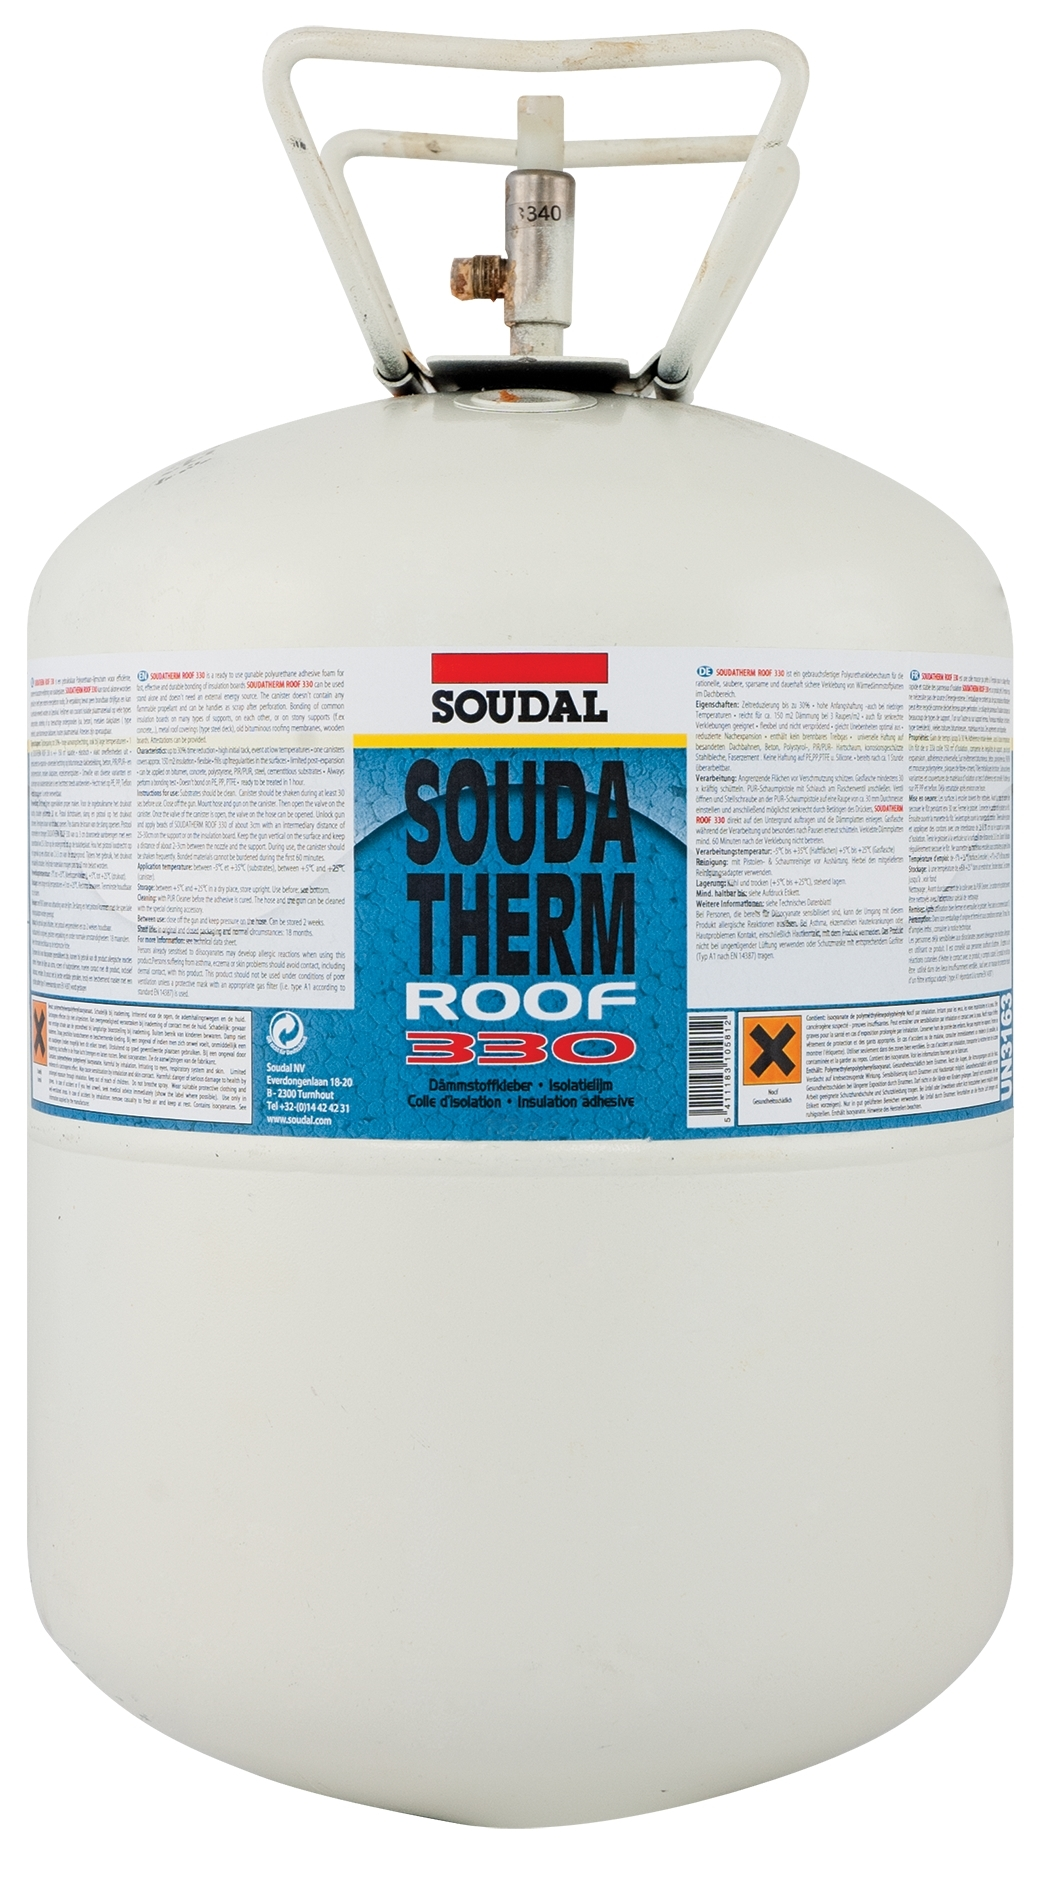 www.dachholding.com soudatherm roof 330